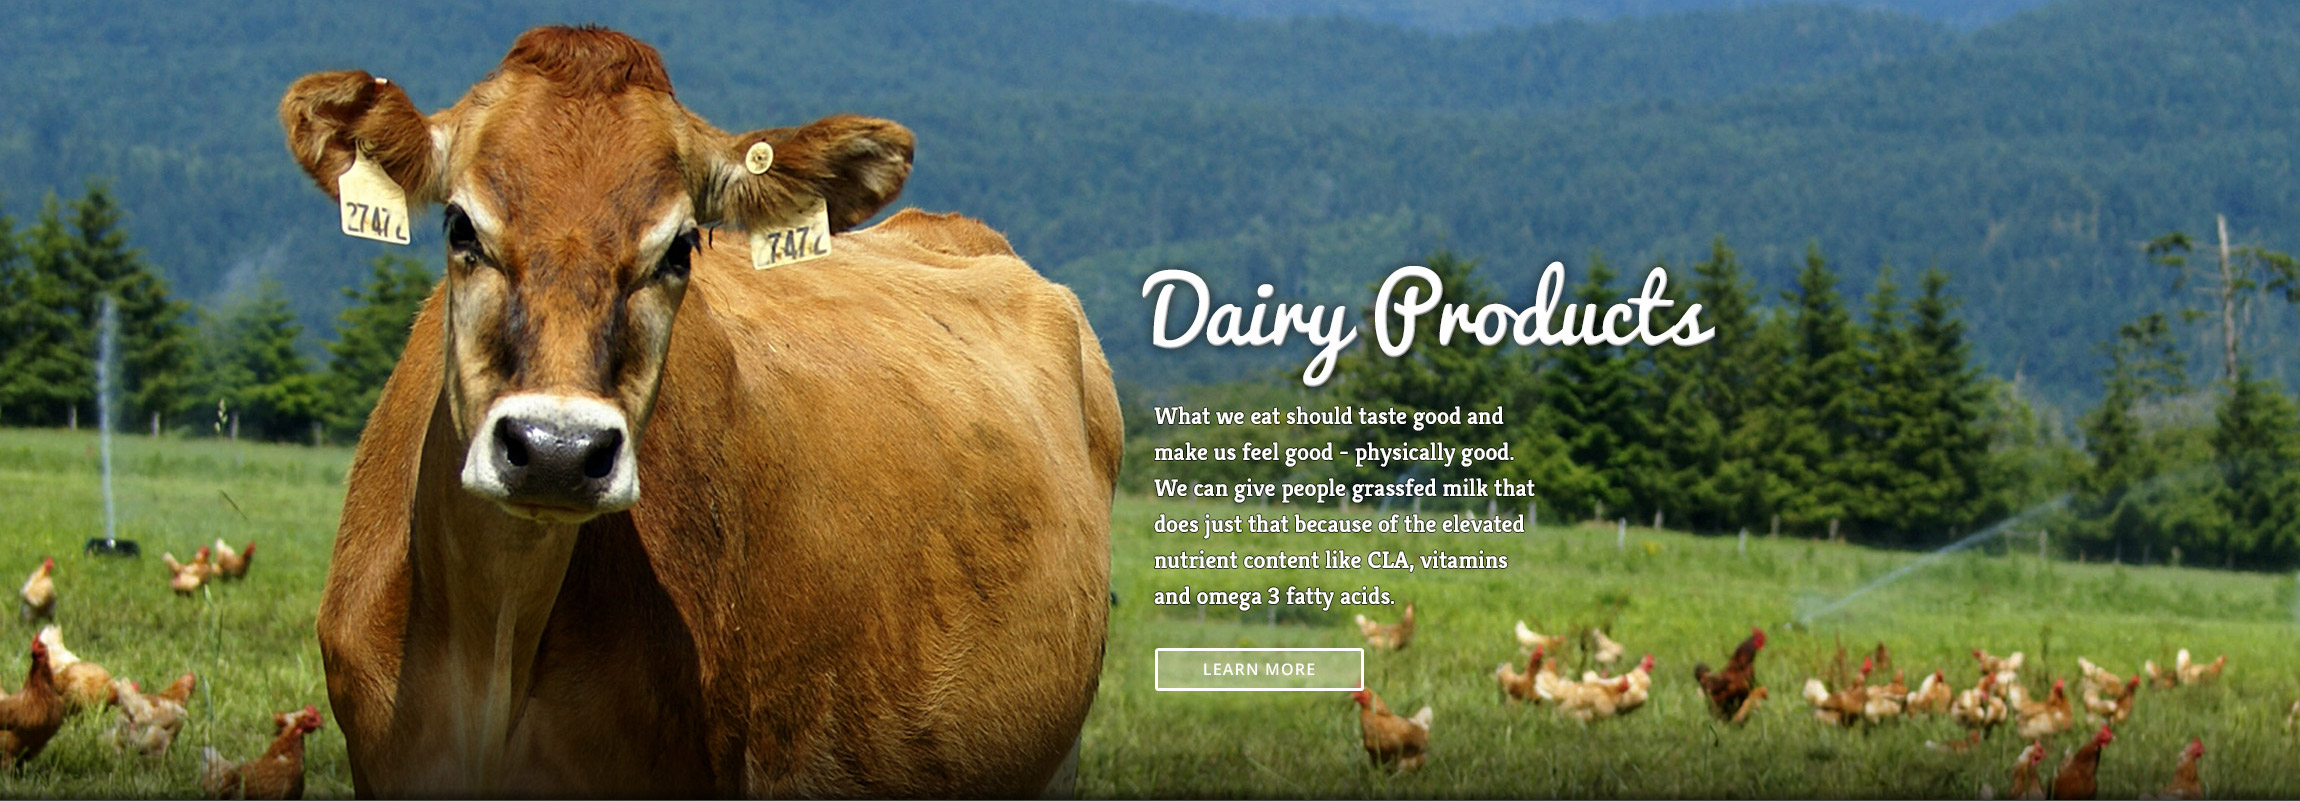 Alexandre EcoDairy Farms organic dairy products - Graphic Regime